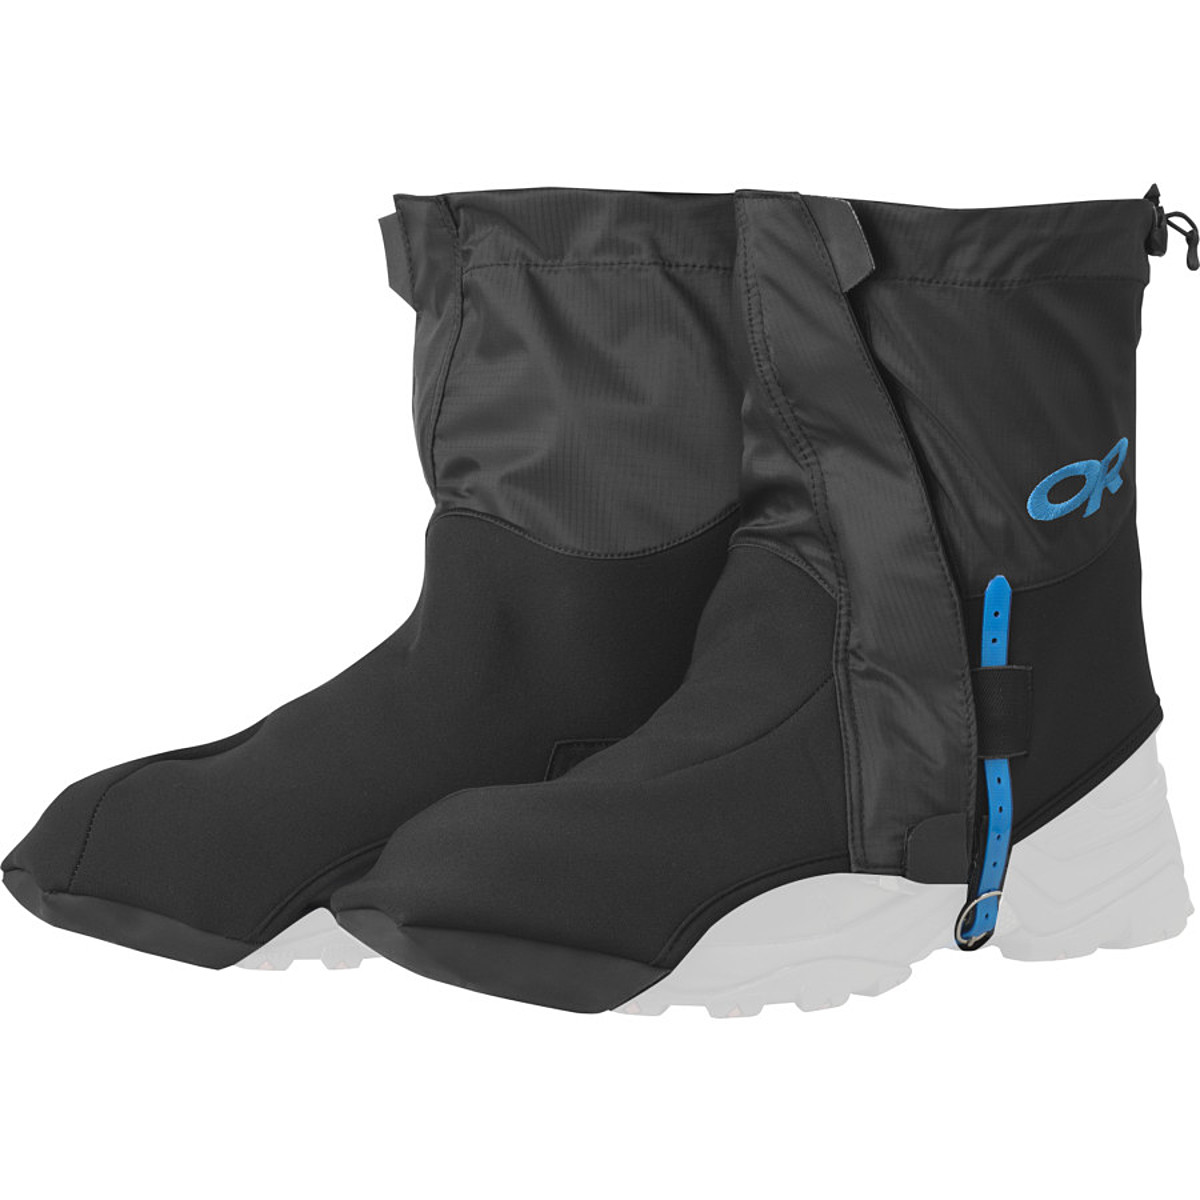 photo: Outdoor Research Huron Gaiters Low gaiter